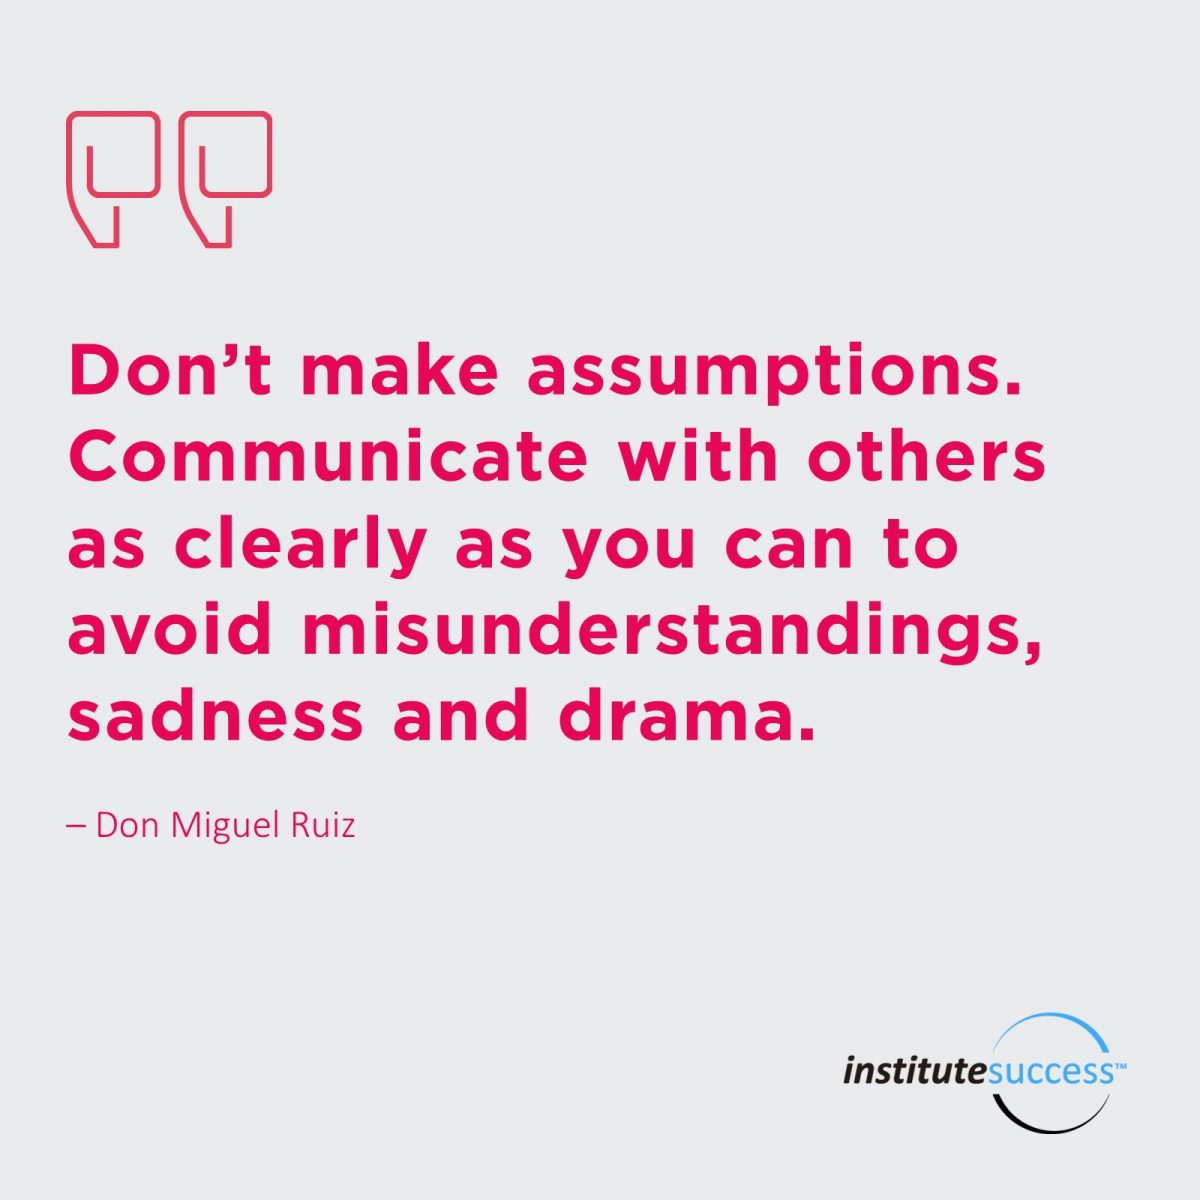 Don't make assumptions. Communicate with others as clearly as you can to avoid misunderstandings, sadness and drama. – Don Miguel Ruiz